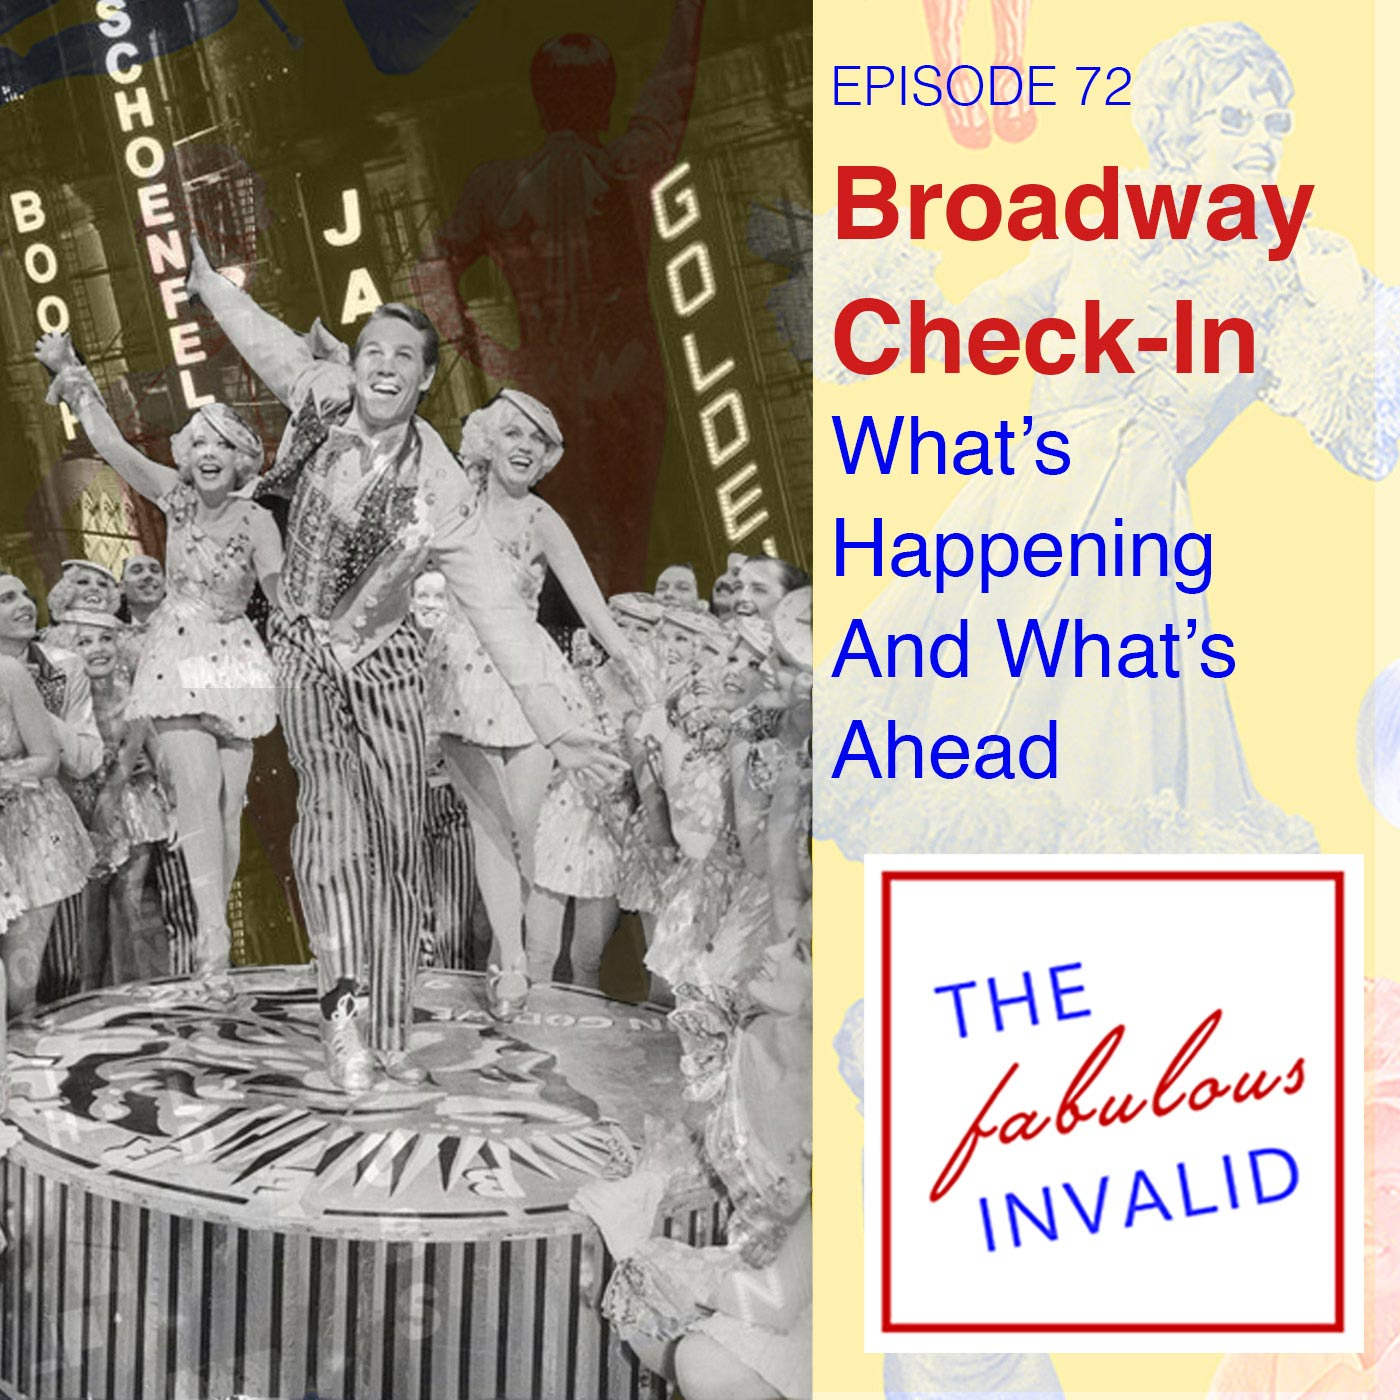 The Fabulous Invalid - Episode 72: Broadway Check-In: What's Happening And What's Ahead